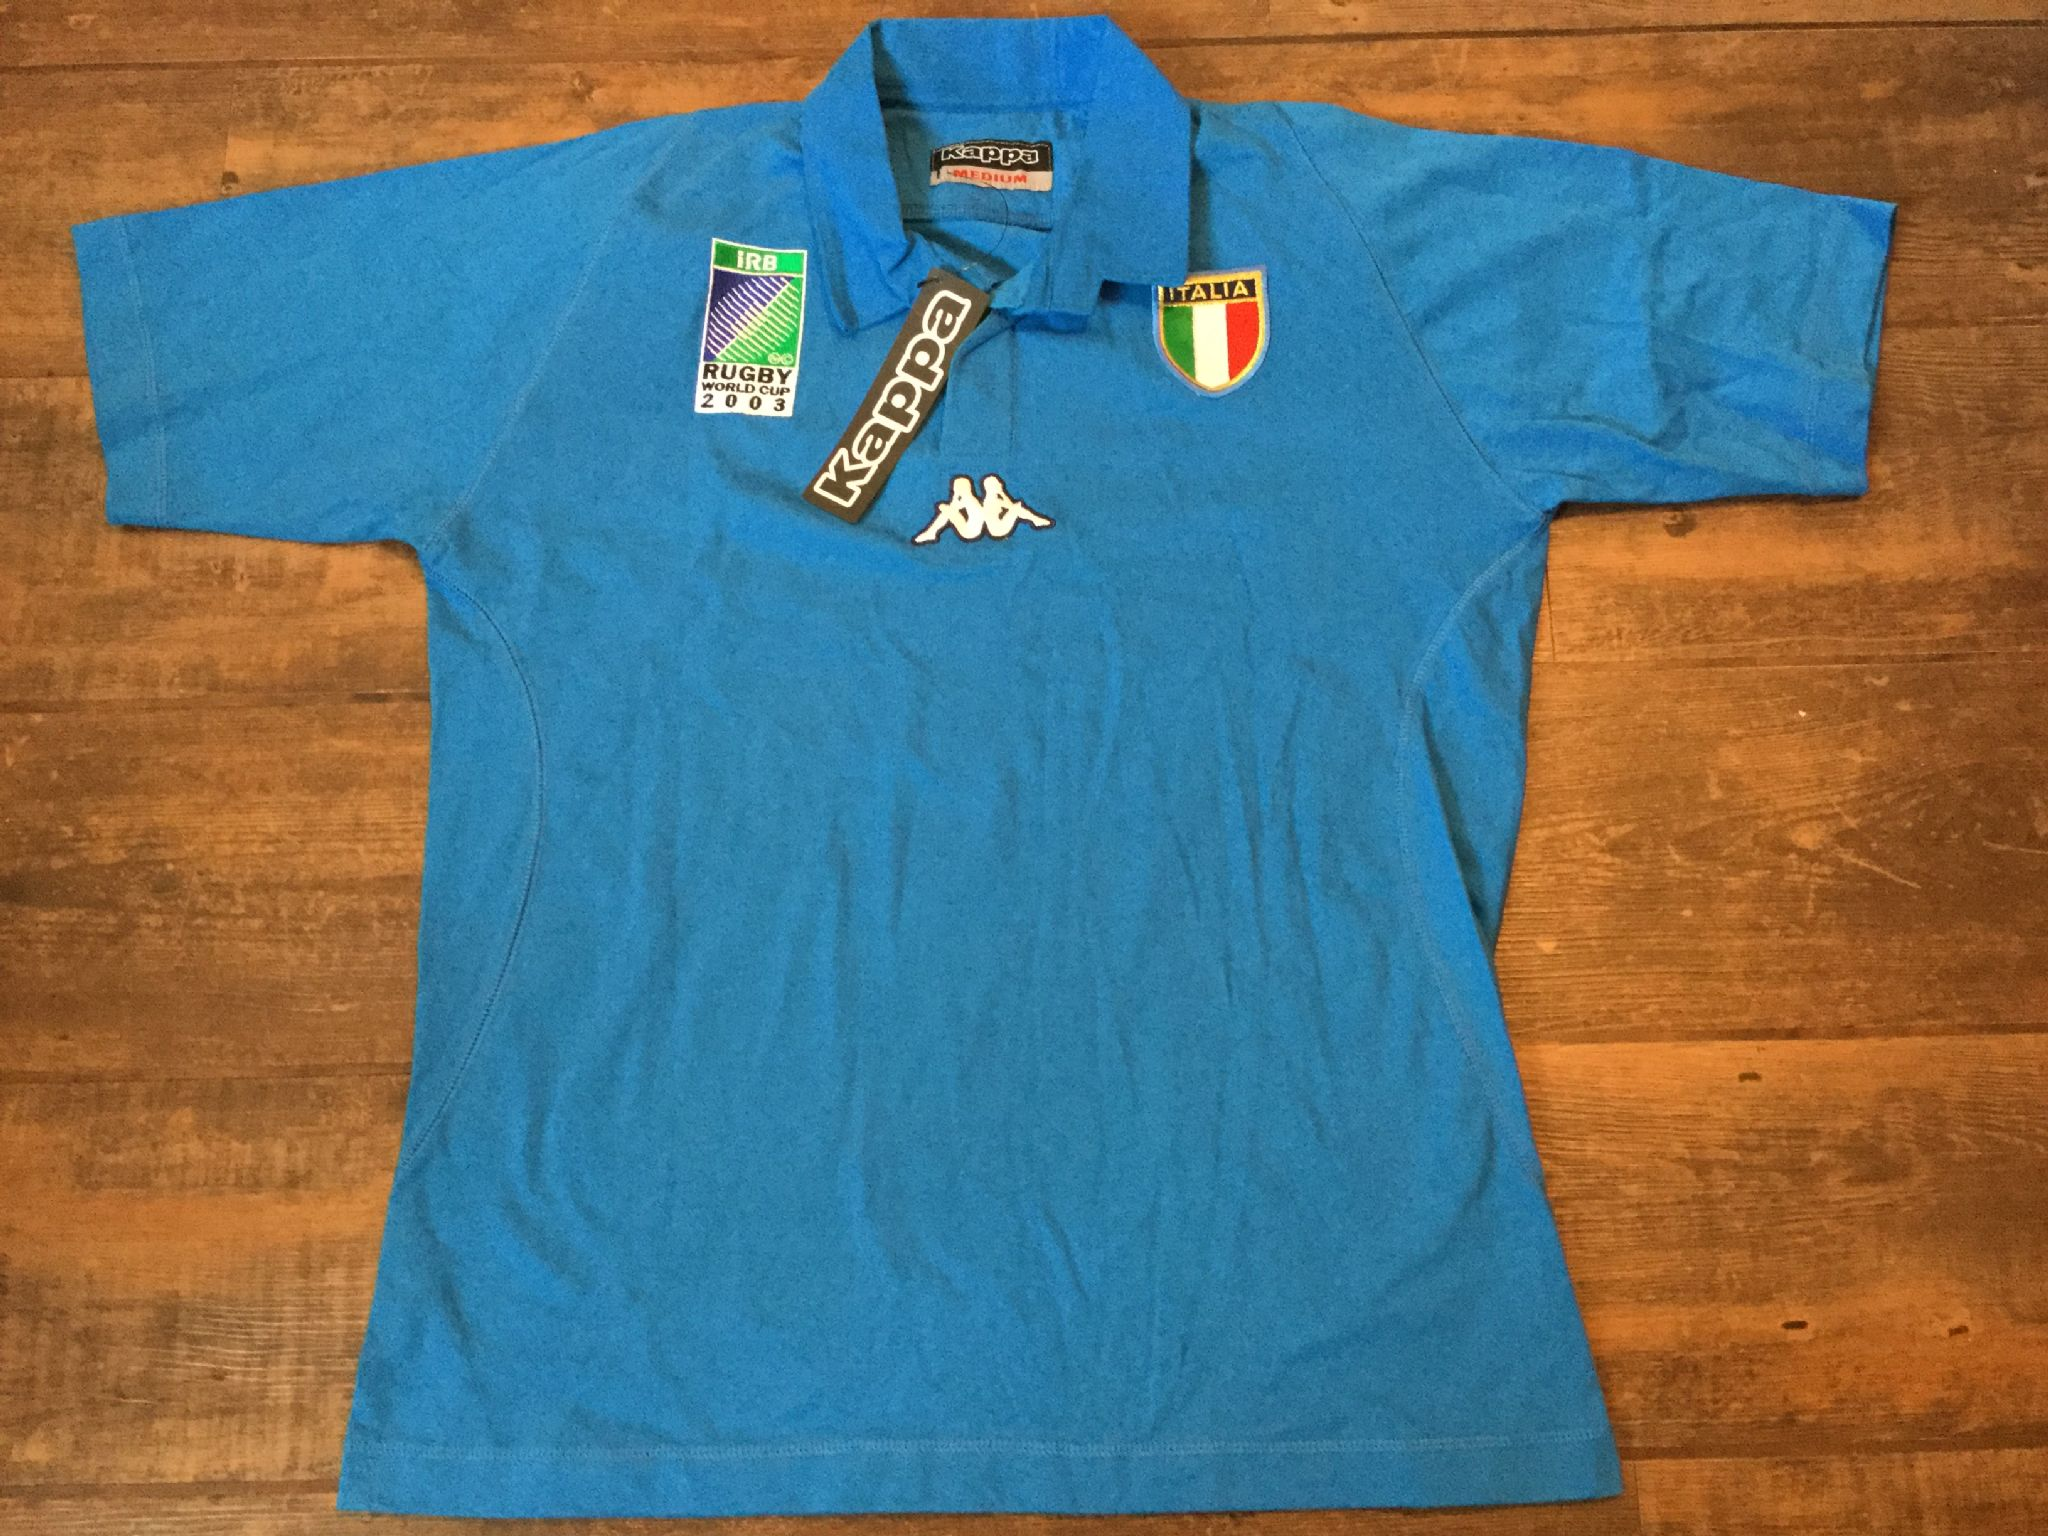 2003 Italy World Cup BNWT New Rugby Union Shirt Adults Medium 58faf71b8